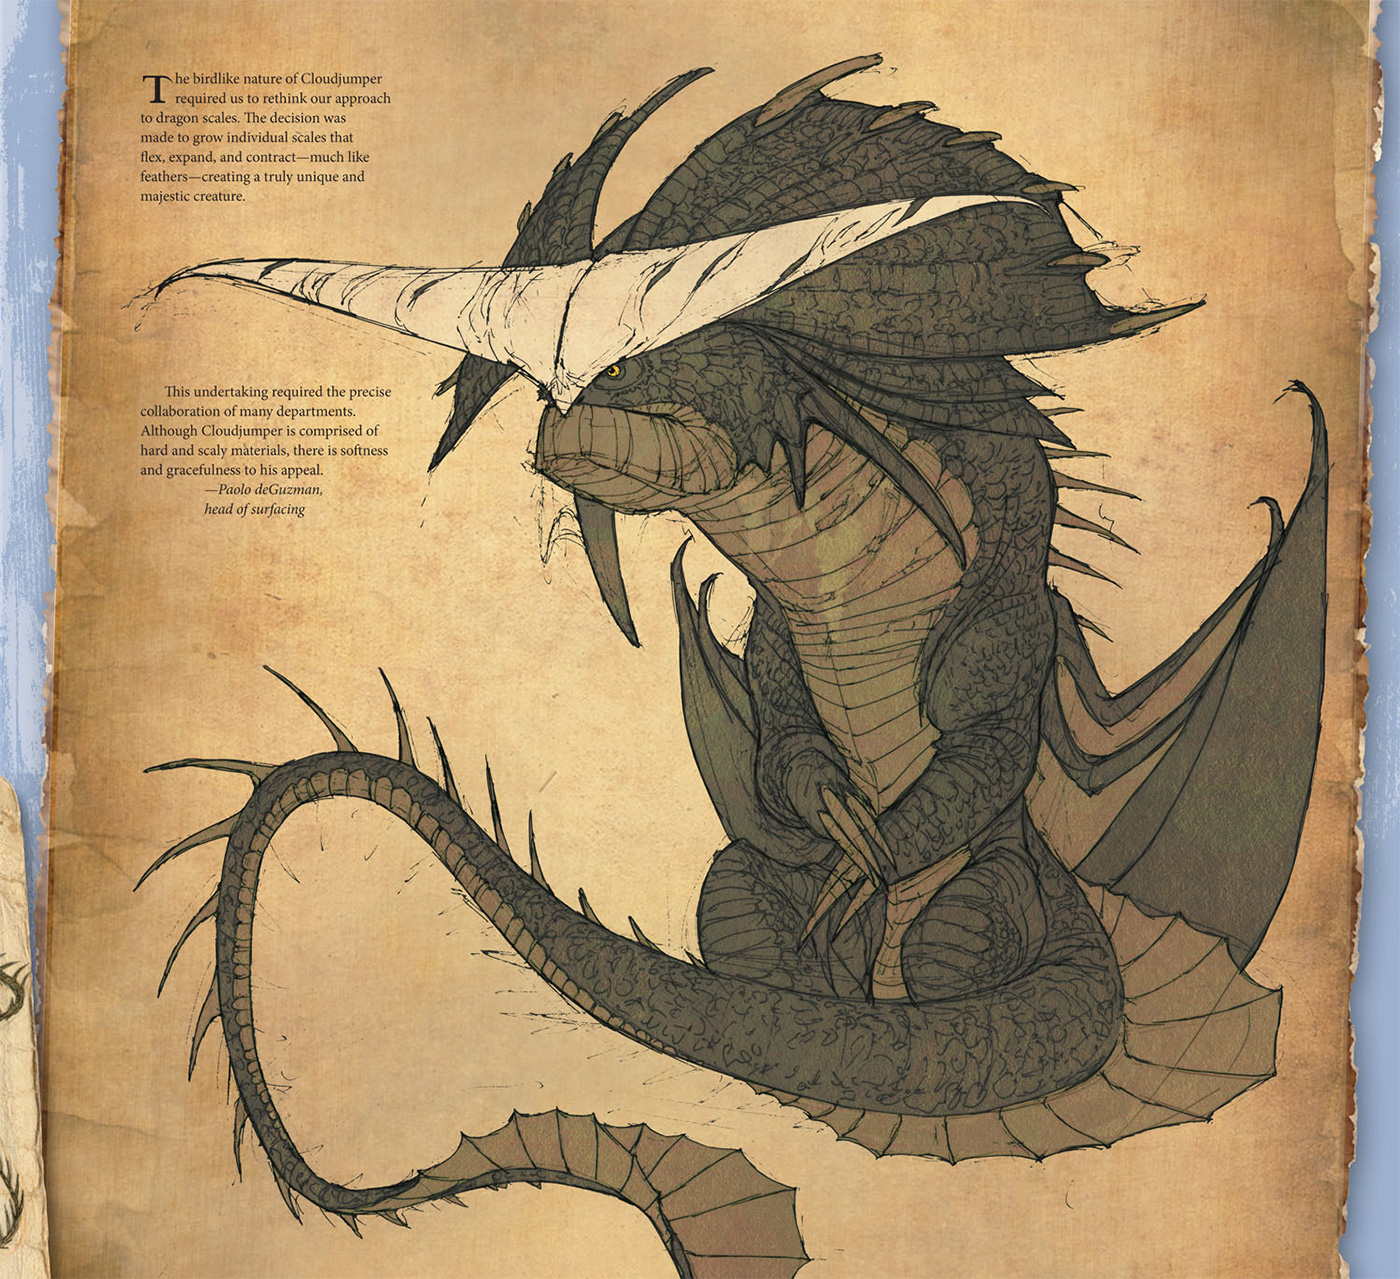 The art of how to train your dragon 2 linda sunshine titan books several pages are then dedicated to valka her dragon cloudjumper and her refuge the nest of dragons this section presents the new dragons including the ccuart Choice Image